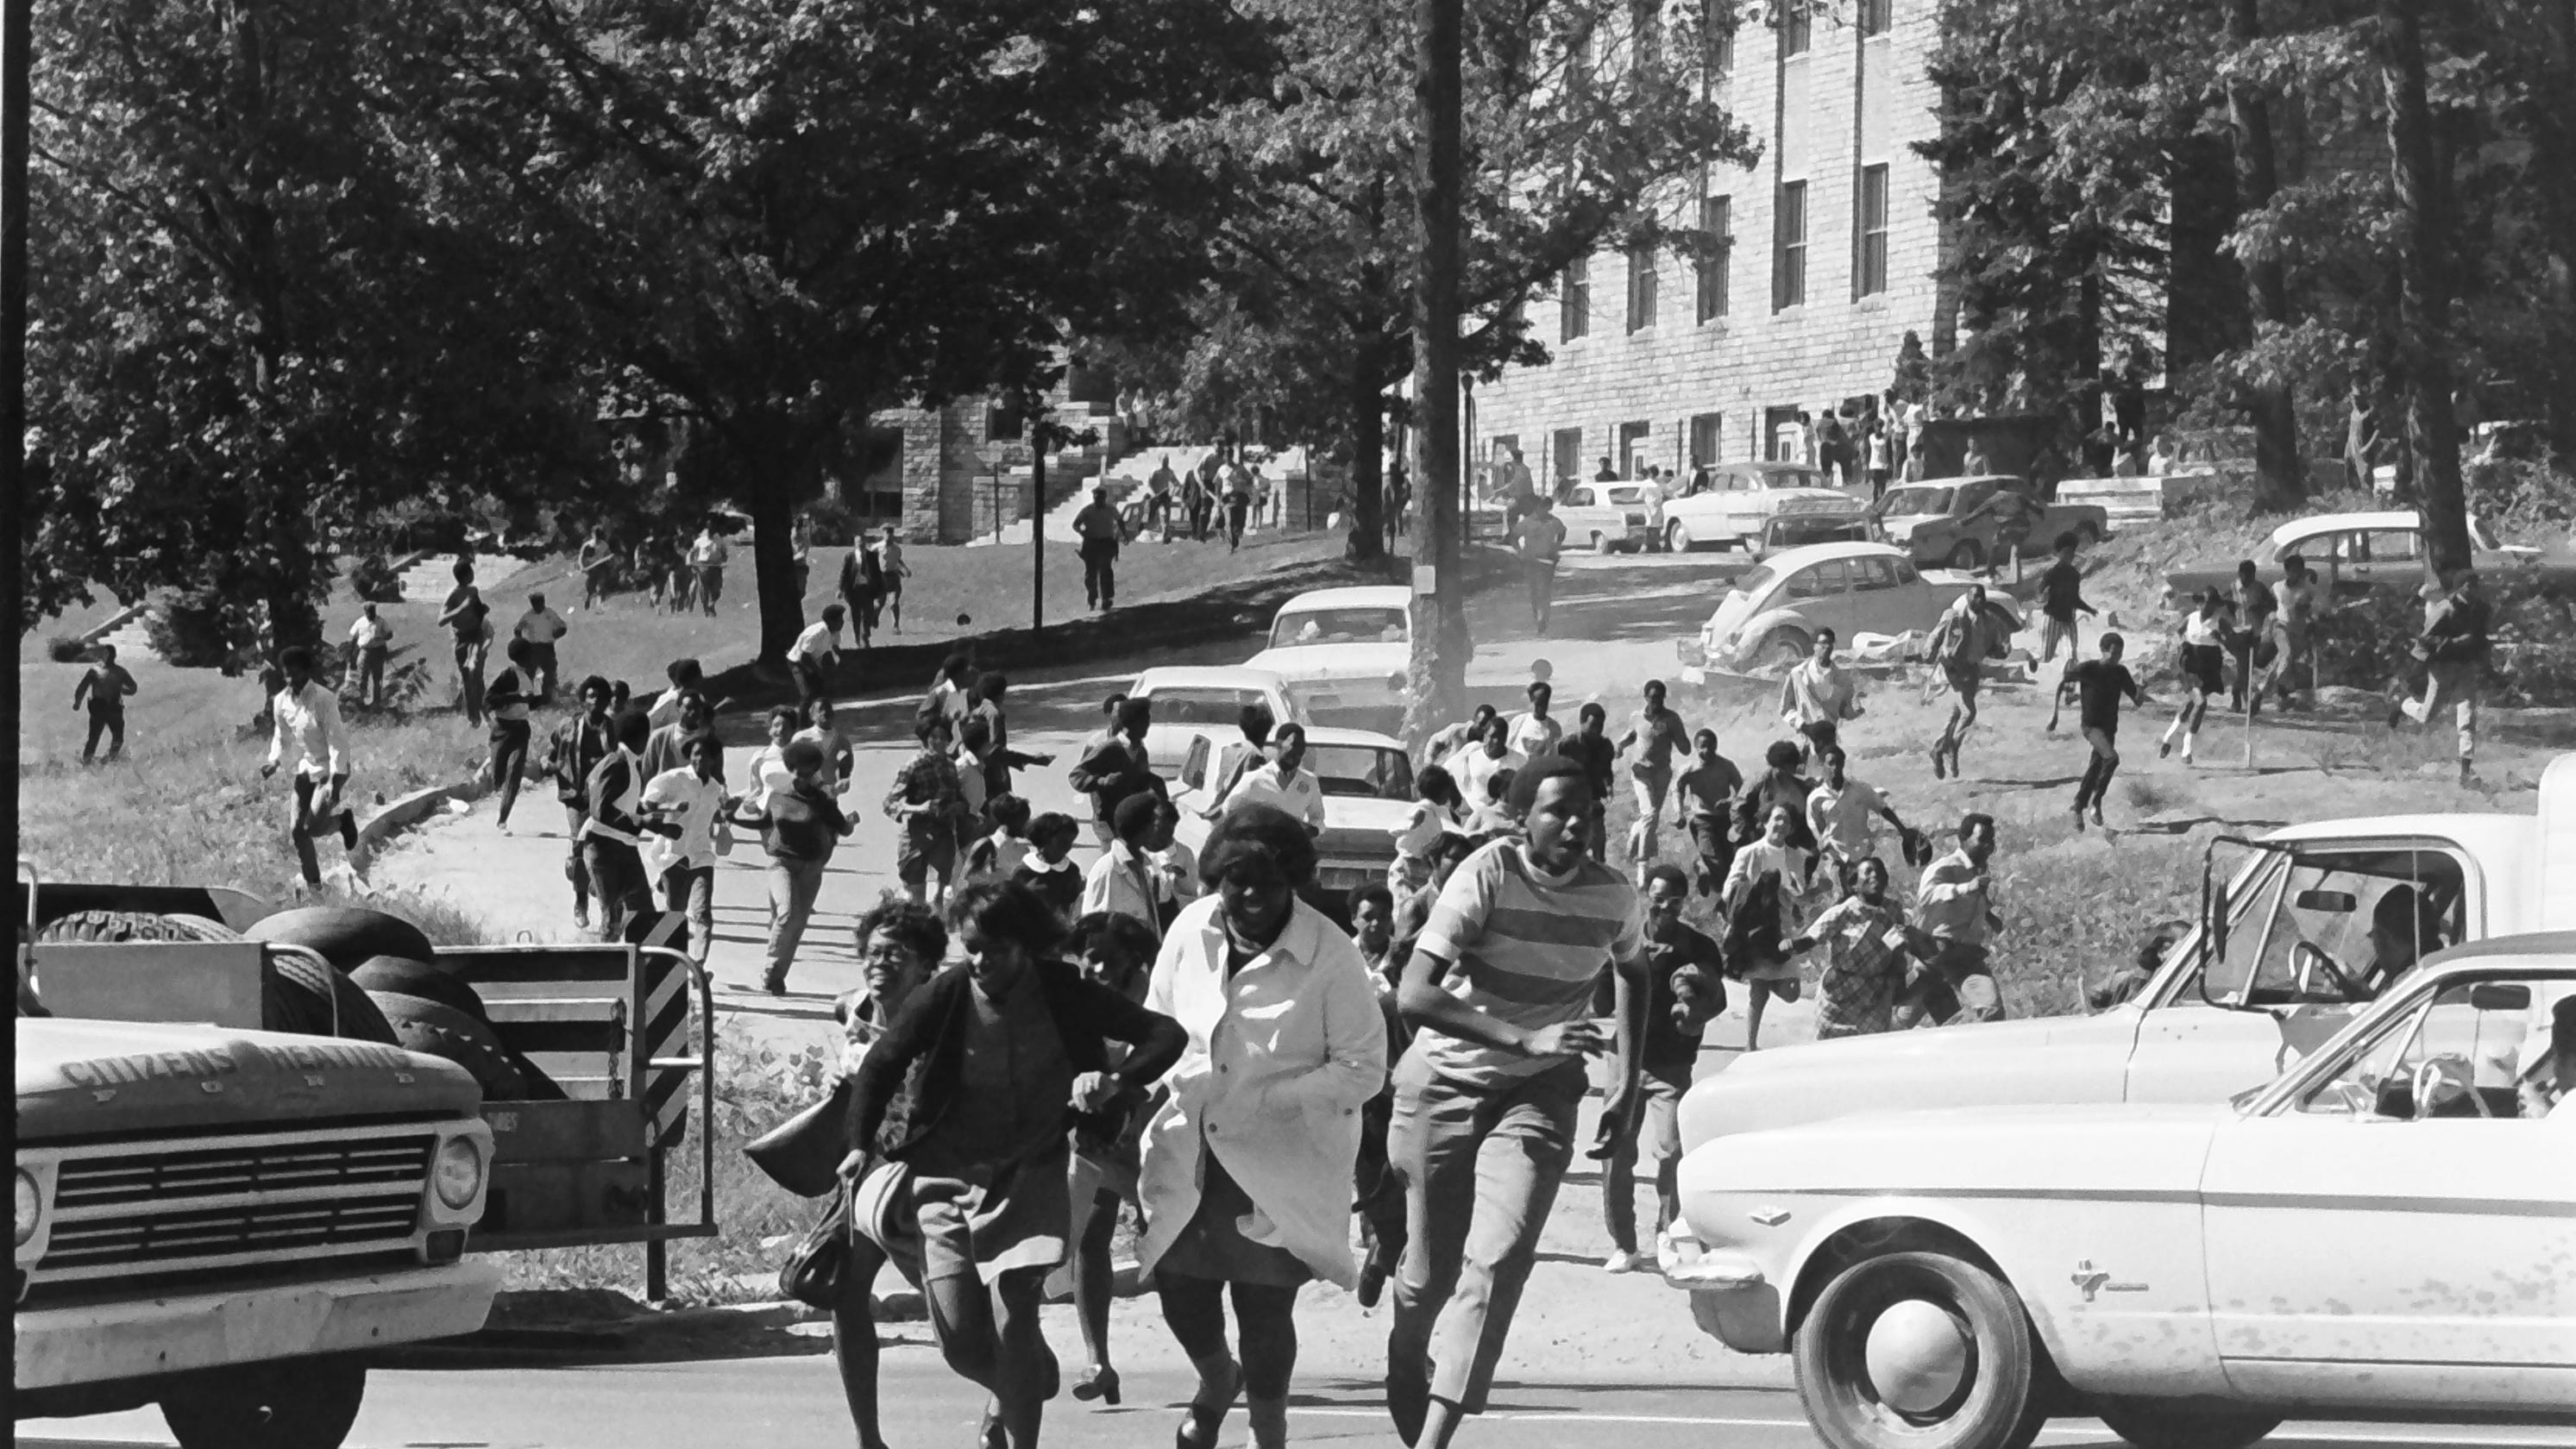 Different reparations: Expelled student in Asheville High's 1969 walkout might get diploma